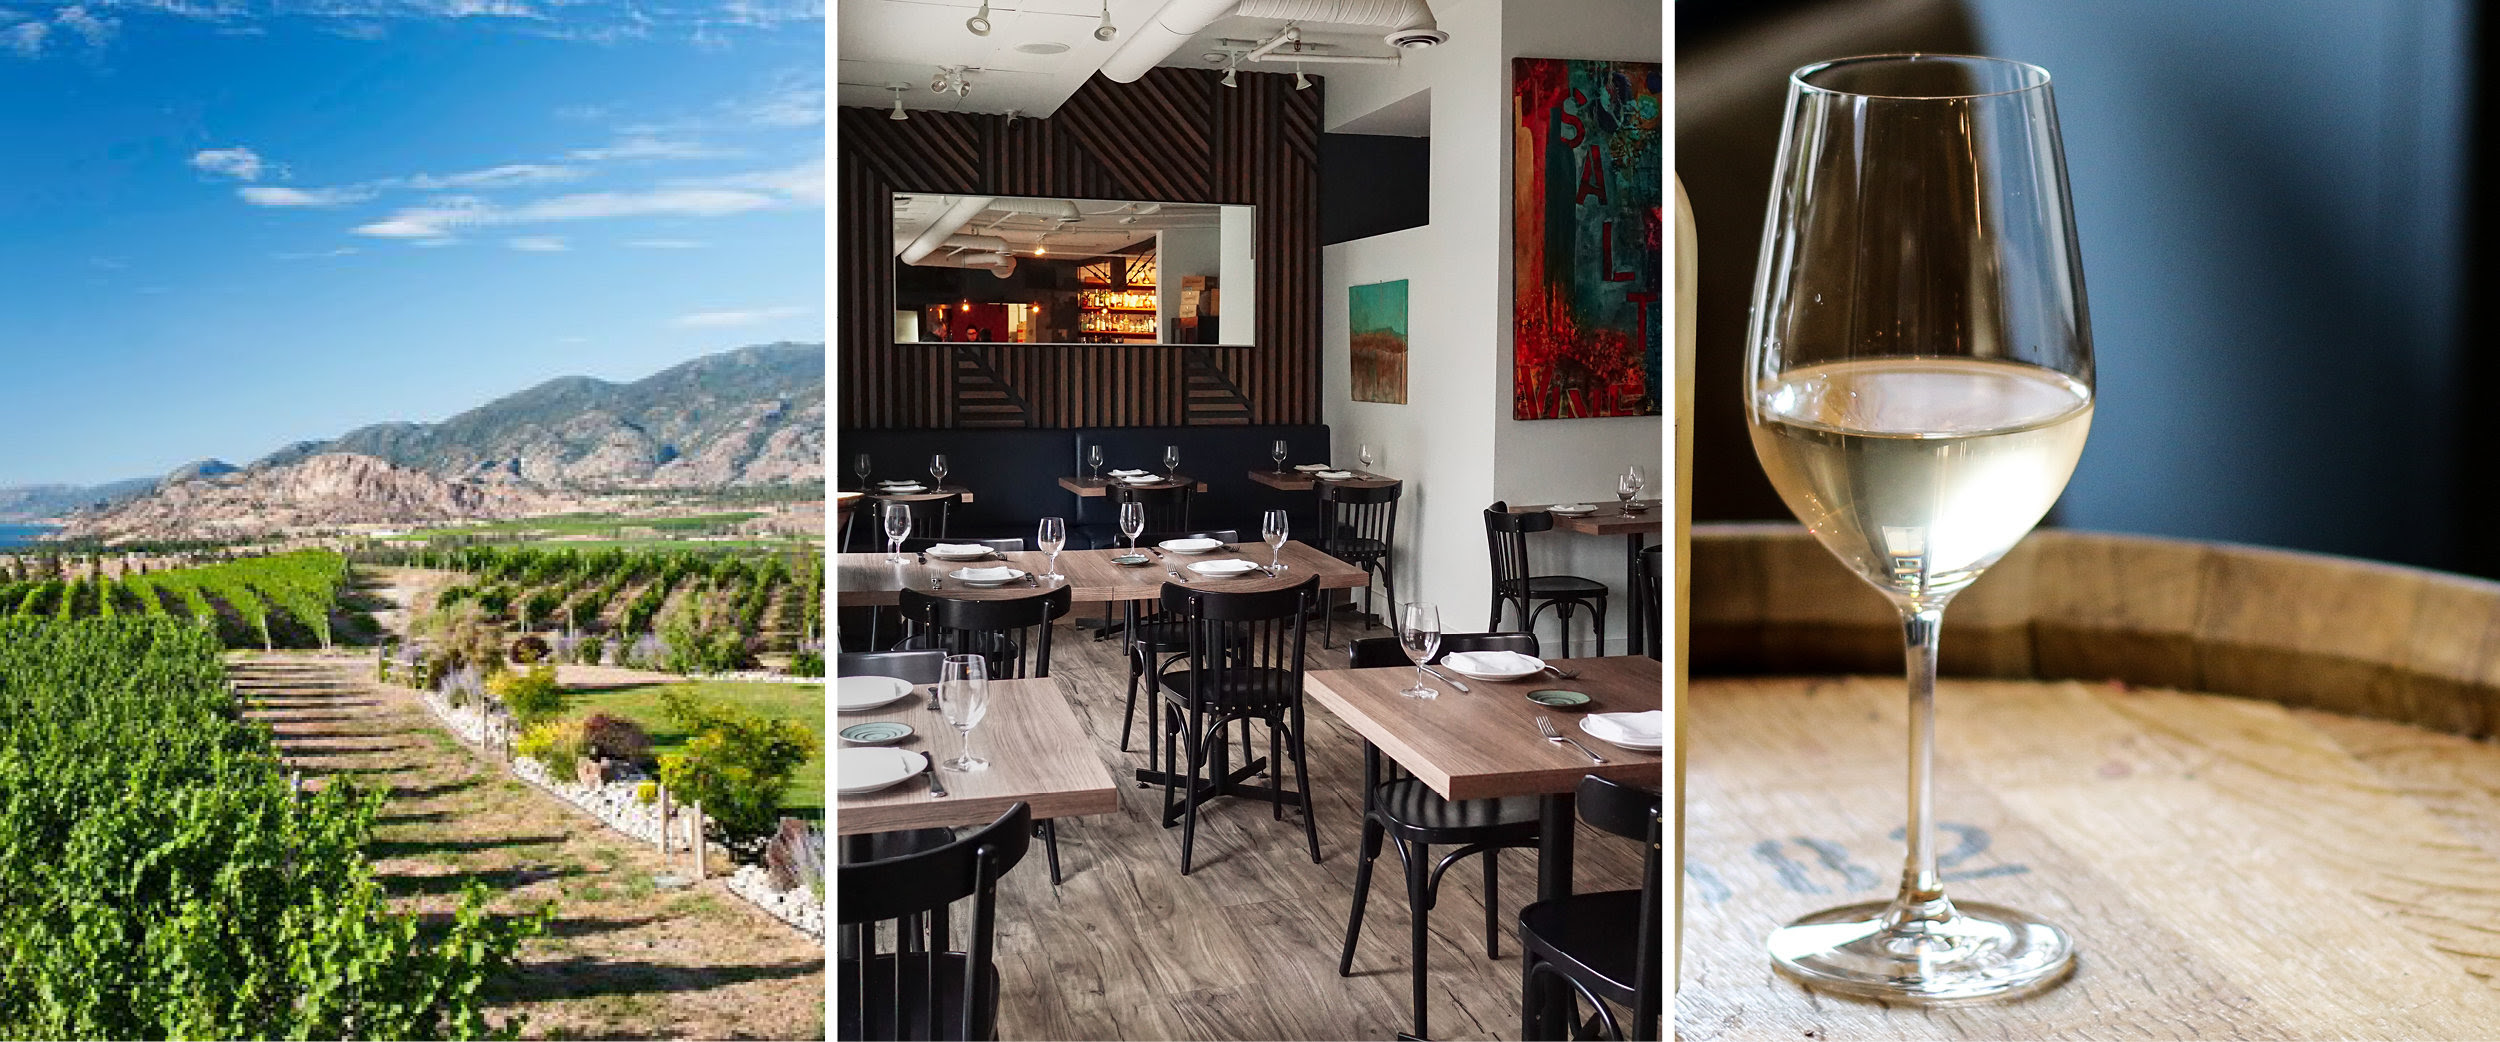 The Salted Vine Kitchen + Bar Hosts Exclusive 'Wines of BC' Dinner on May 2